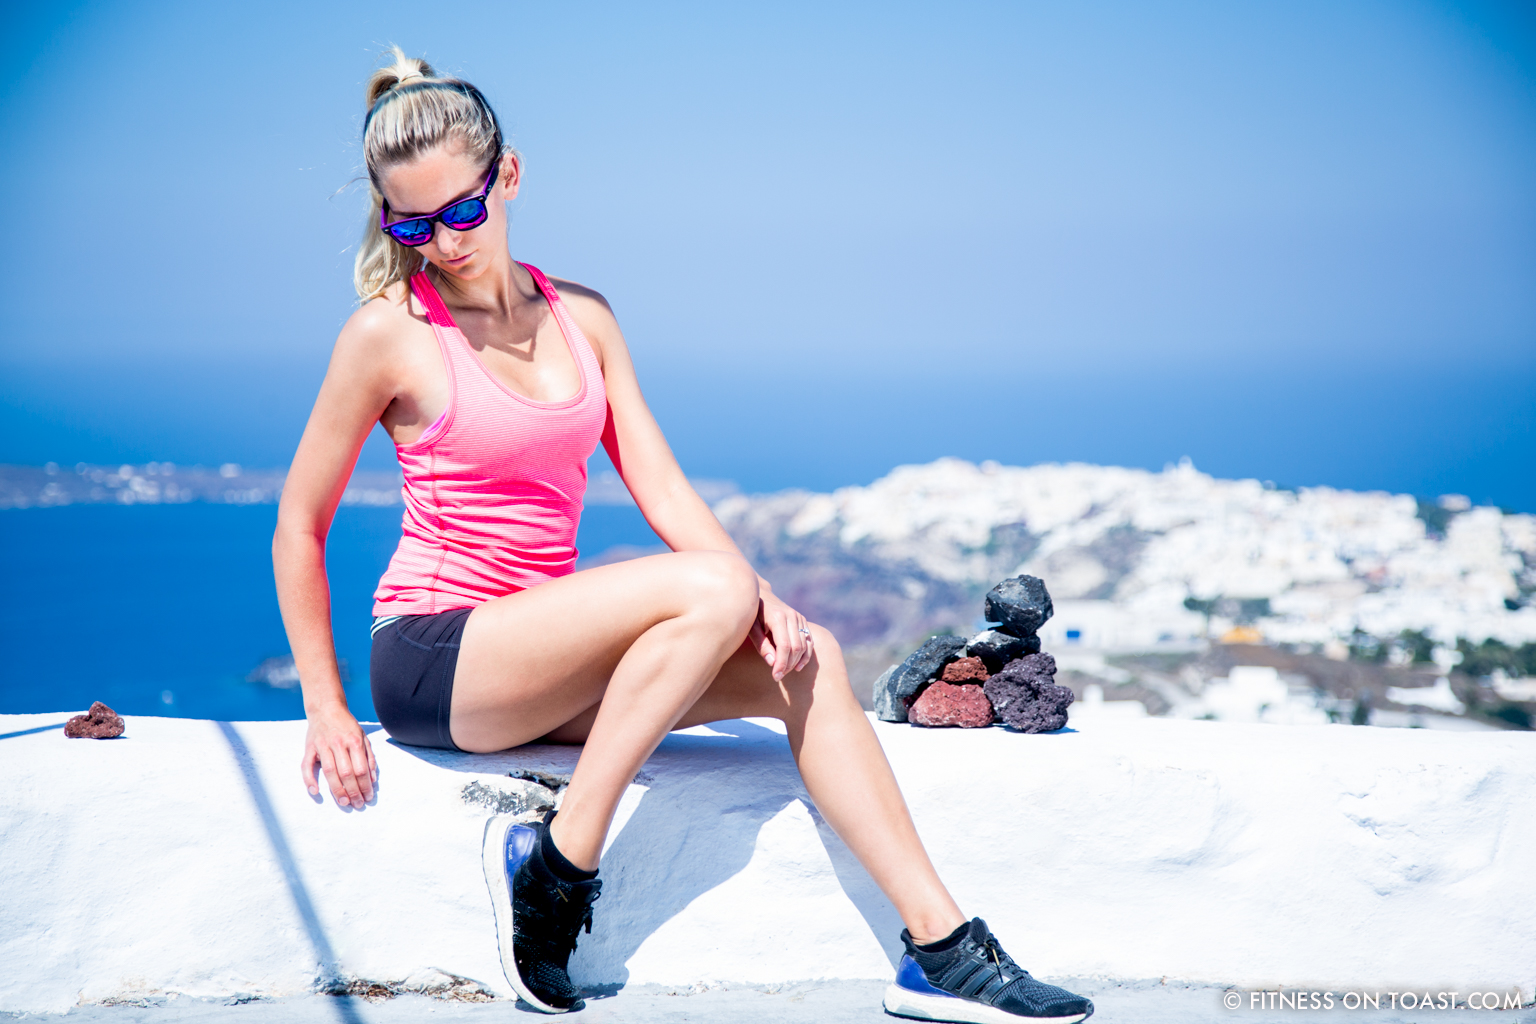 Fitness On Toast Faya Blog Healthy Workout Travel Active Escape H&M Hennes HMSport Fashion Santorini Greece Outfit OOTD-8